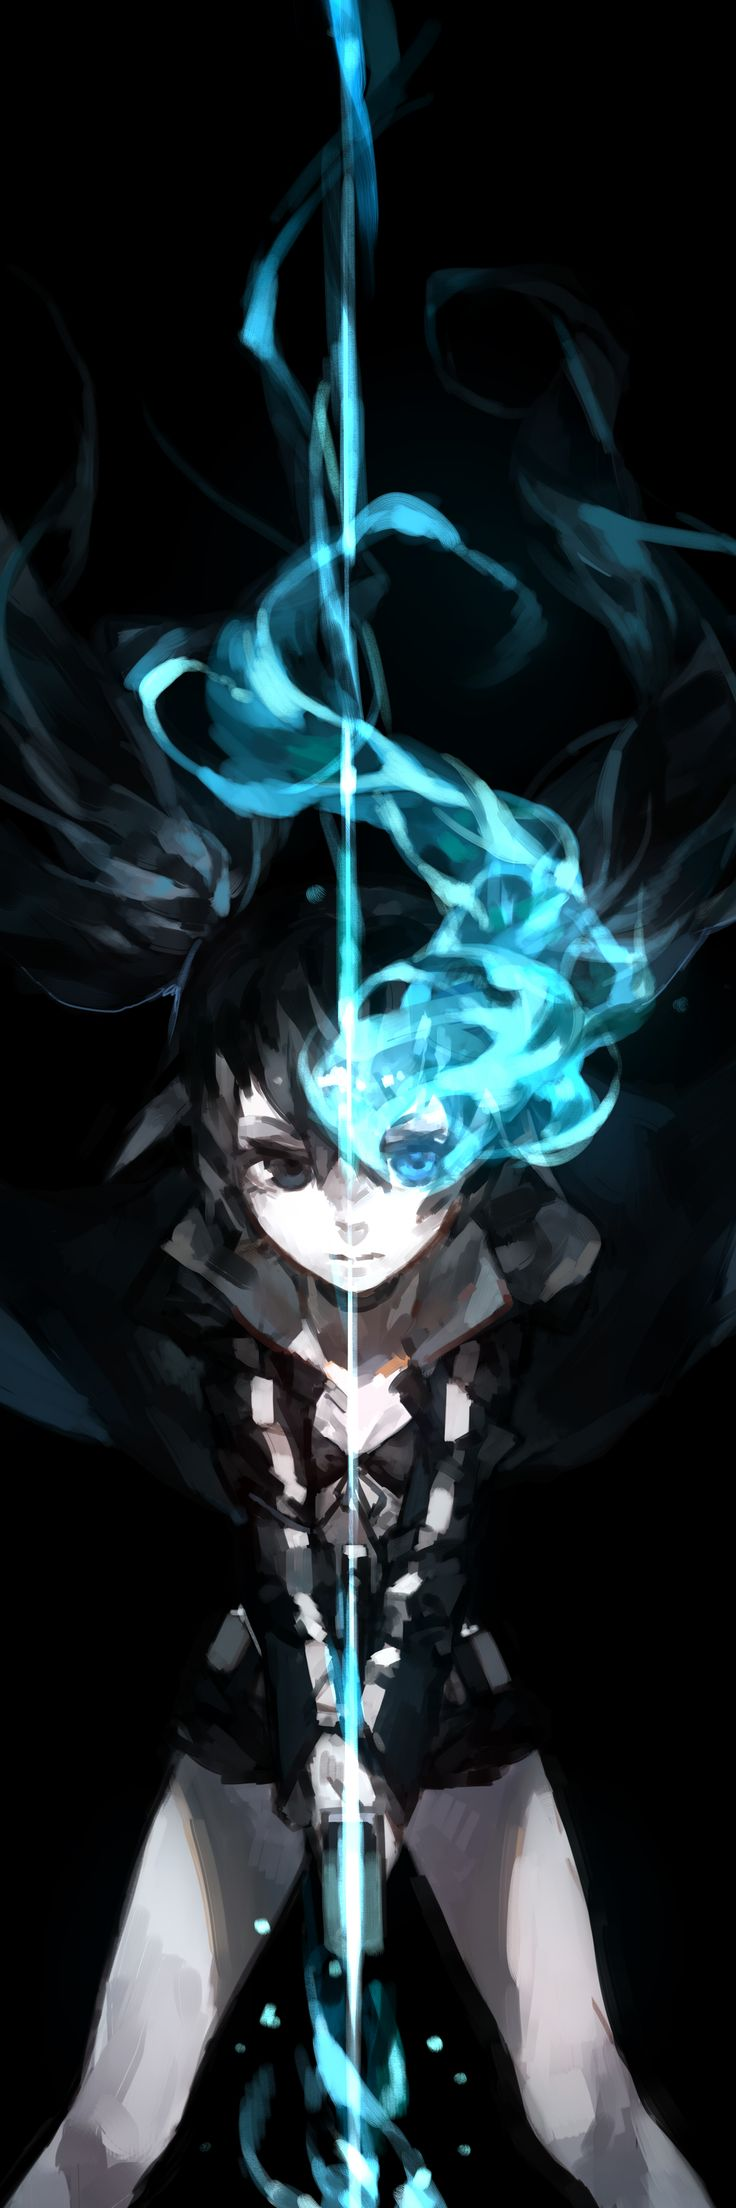 anime heterochromia / odd eyes black blue (Black★Rock Shooter)